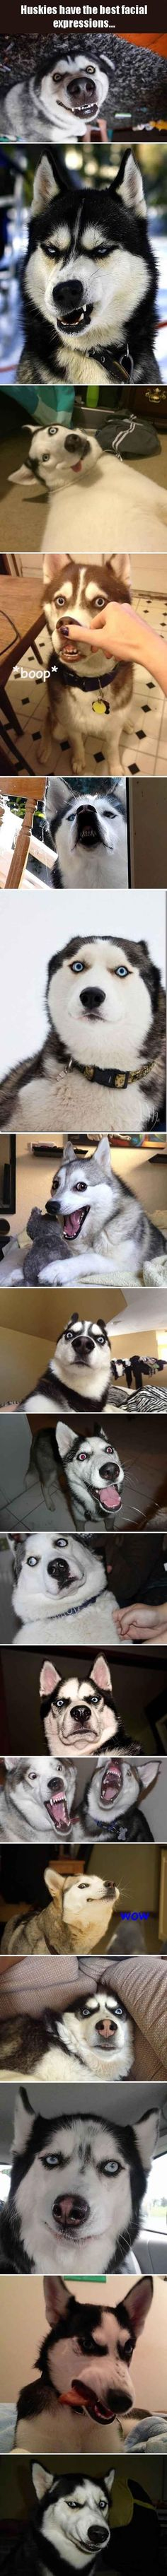 The picture looks like a Siberian Husky Elvis. lol Huskies Have The Best Facial Expressions & 17 Pics Source by snazzypup The post Huskies Have The Best Facial Expressions & 17 Pics appeared first on Murtaza Mutts. Cute Funny Animals, Funny Animal Pictures, Funny Cute, Funny Dogs, Funny Husky, Hilarious, Super Funny, Cute Puppies, Cute Dogs